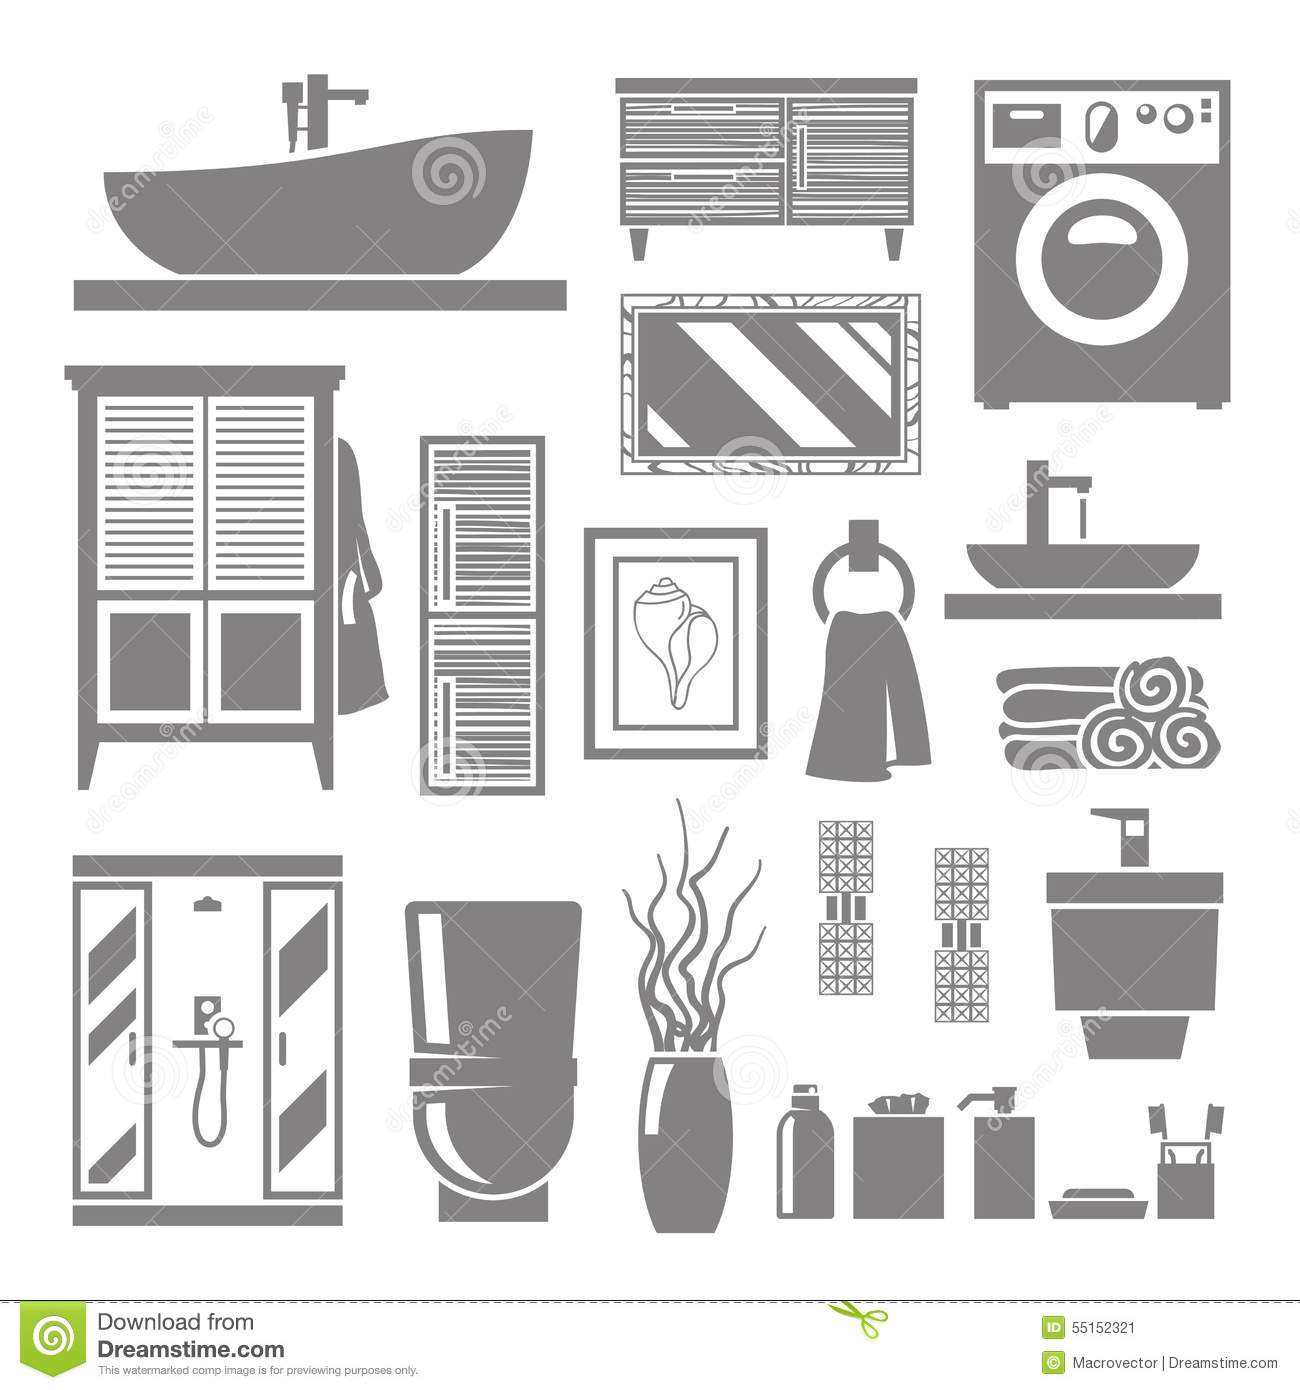 Download Bathroom Furniture Icons Stock Vector Illustration Of Flat